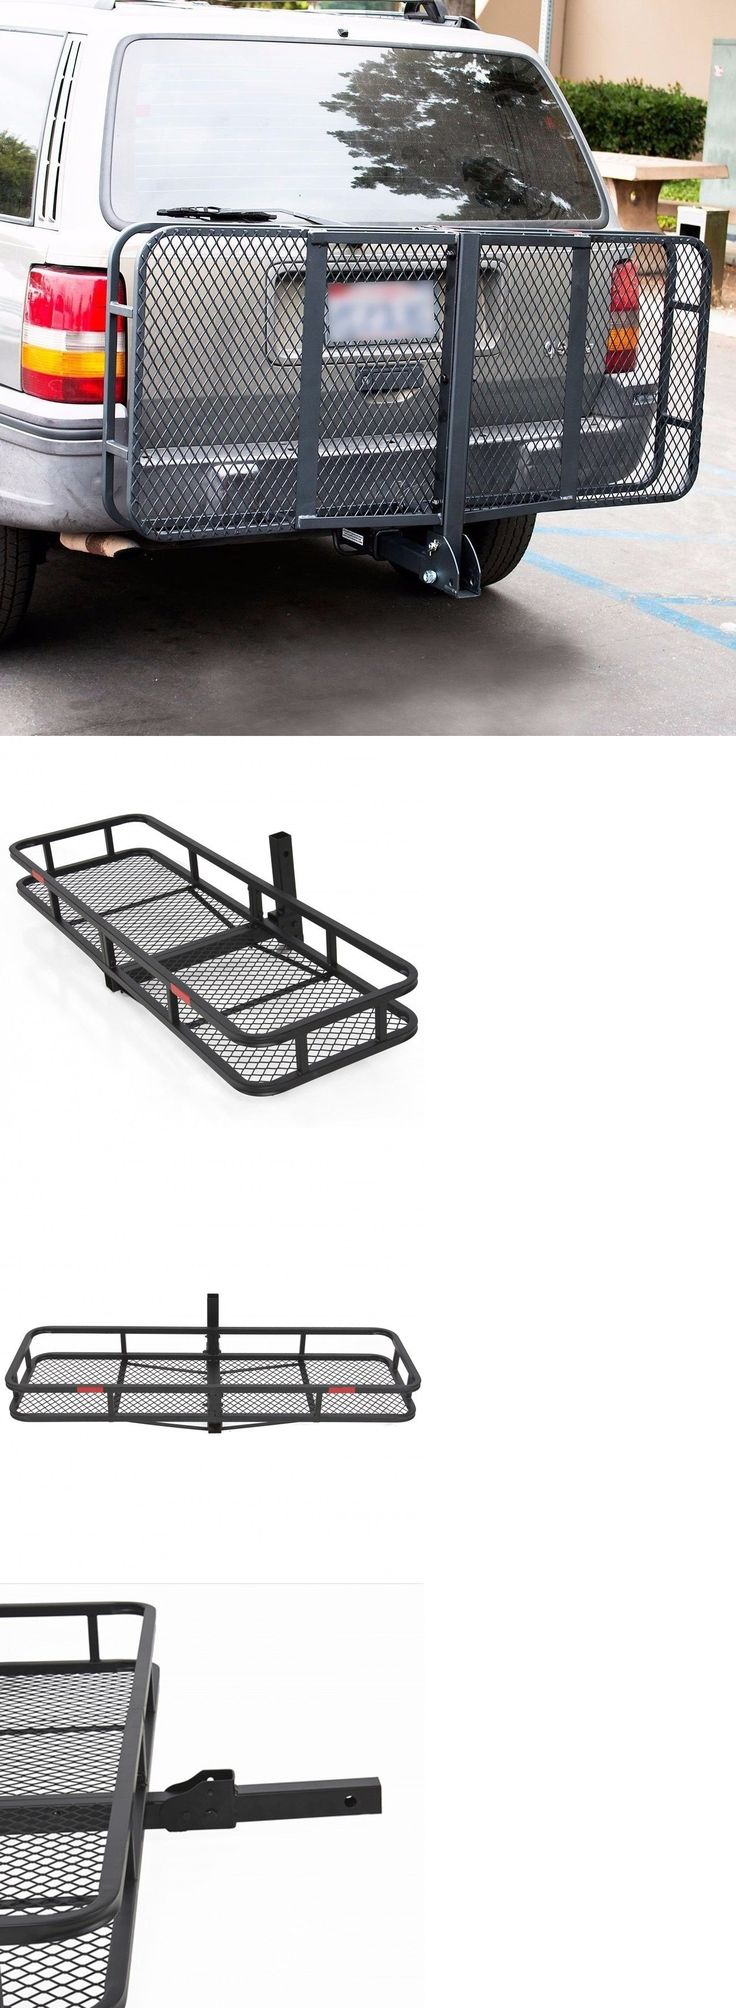 Racks and carriers 21231 car luggage back carrier hitch cargo truck trailer suv holder basket